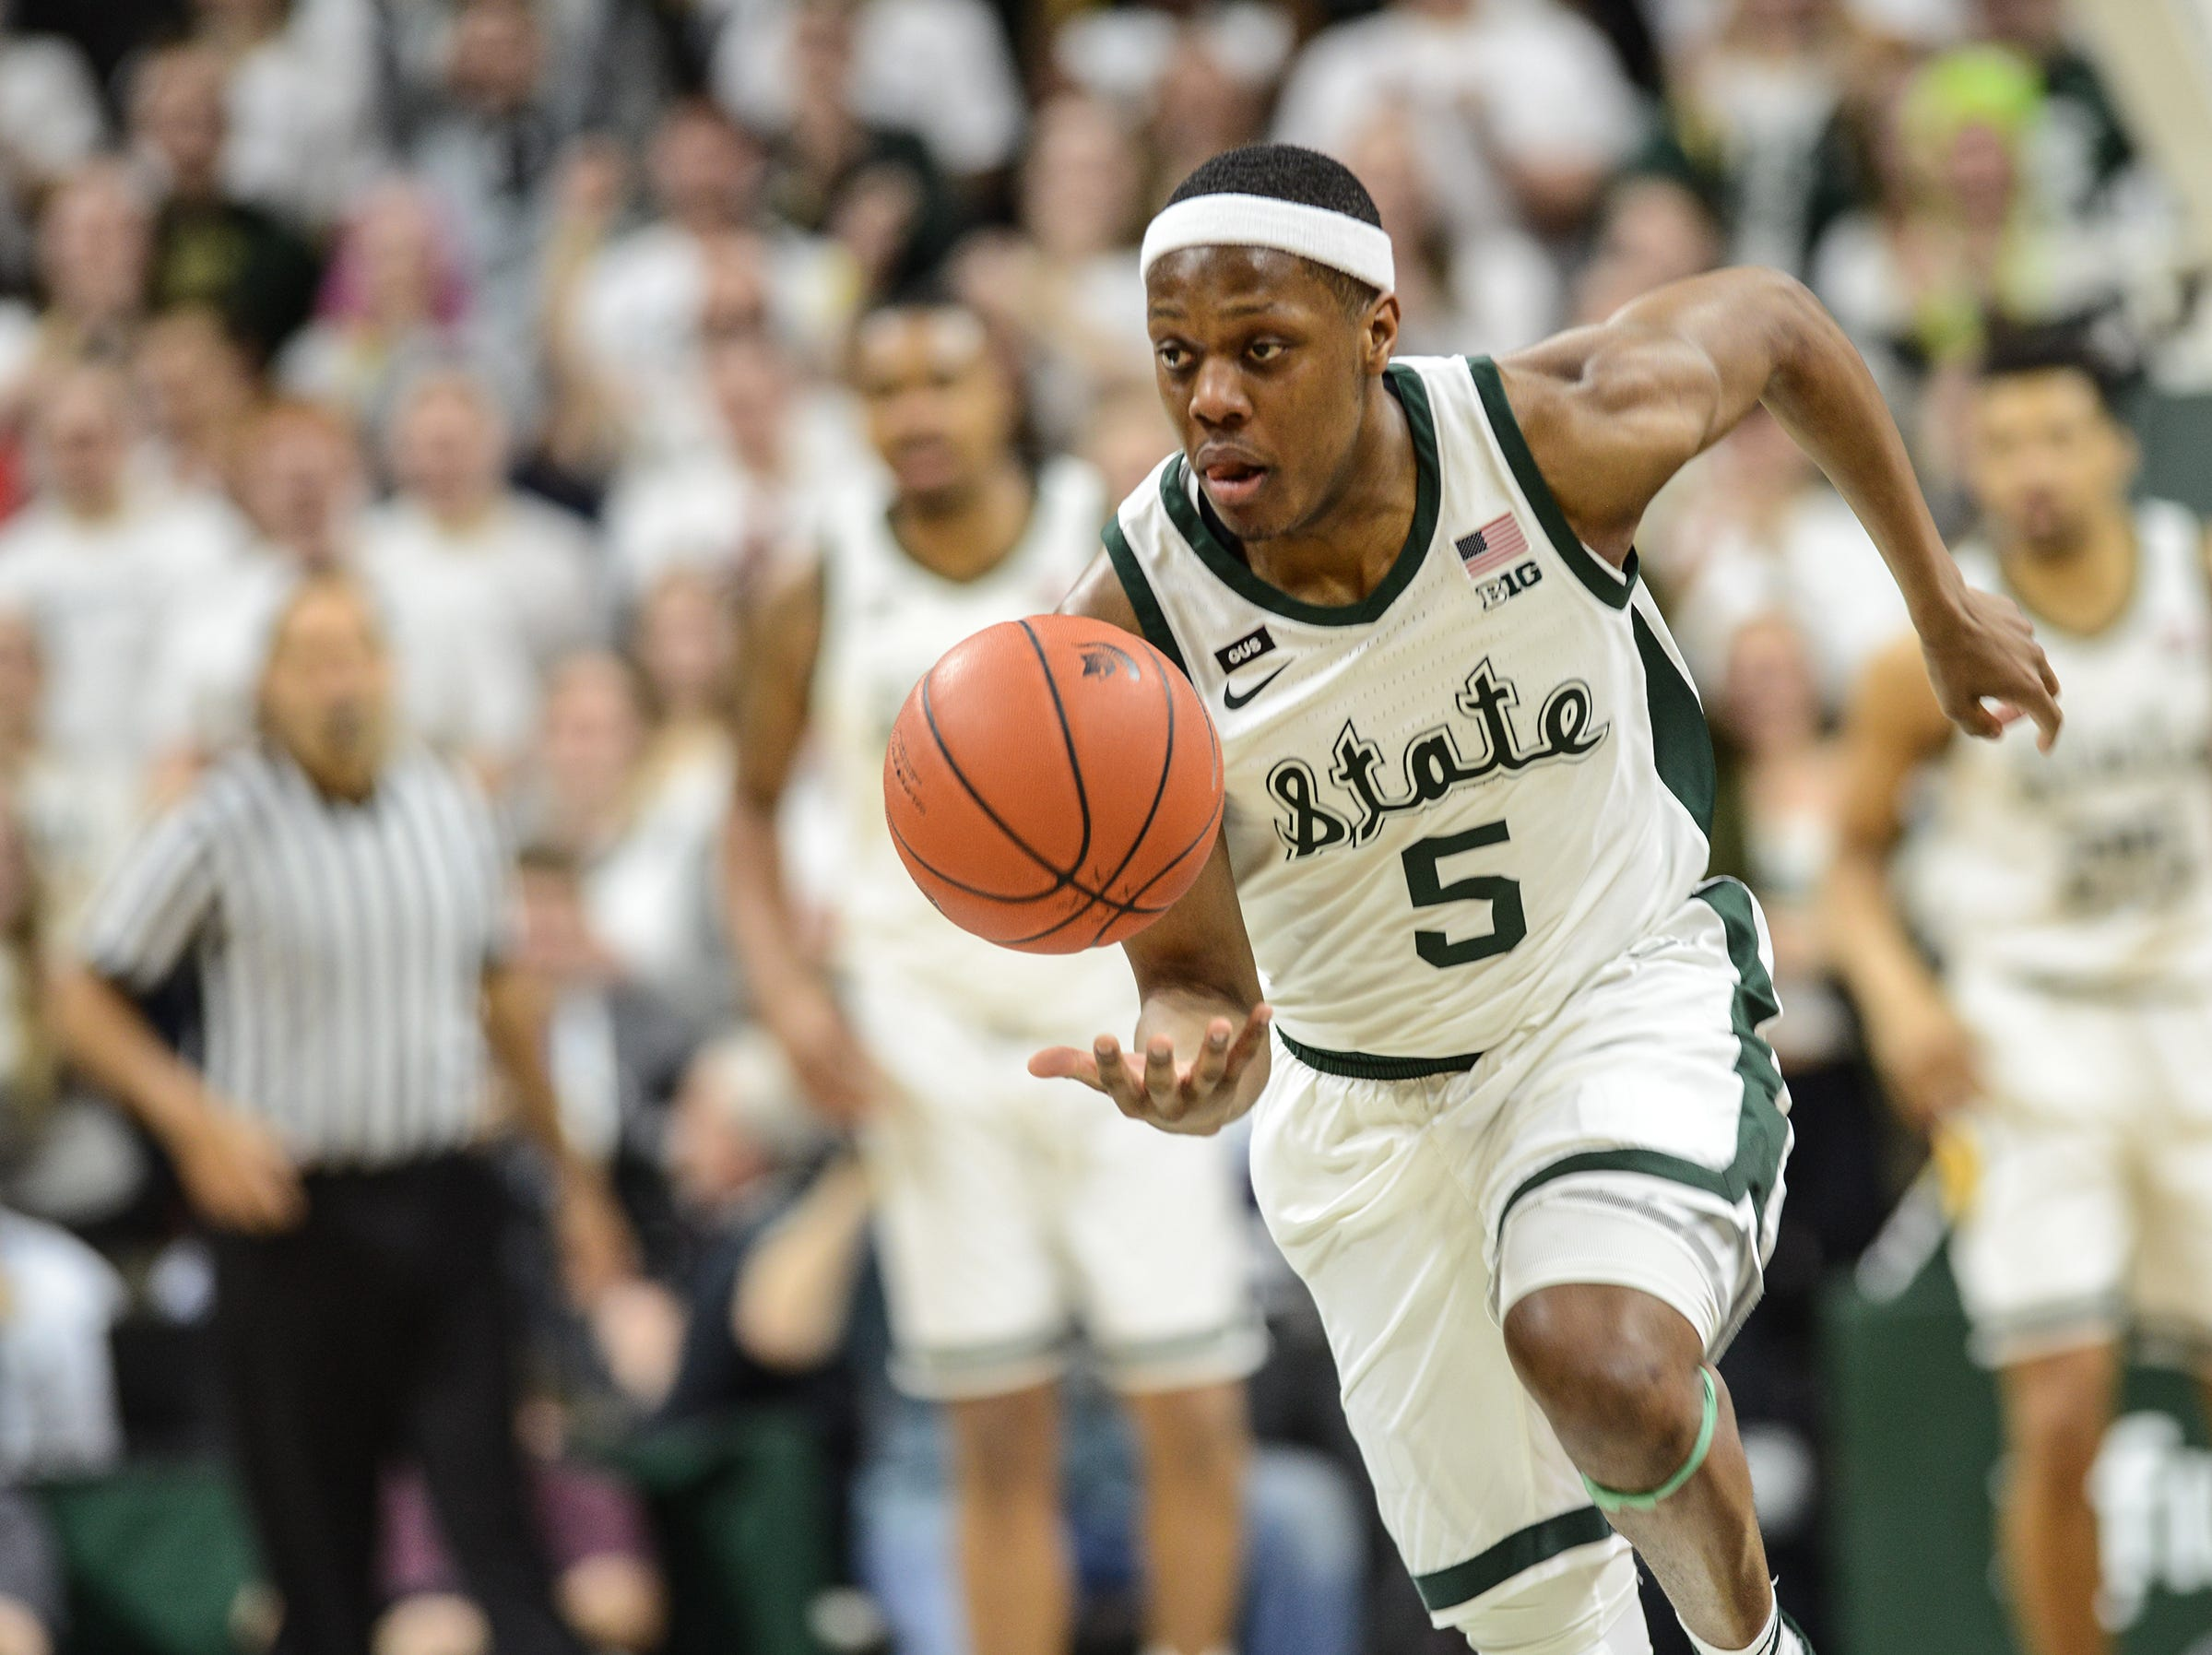 MSU's Cassius Winston brings up the ball against Minnesota at the Breslin Center Saturday, Feb. 9, 2019.